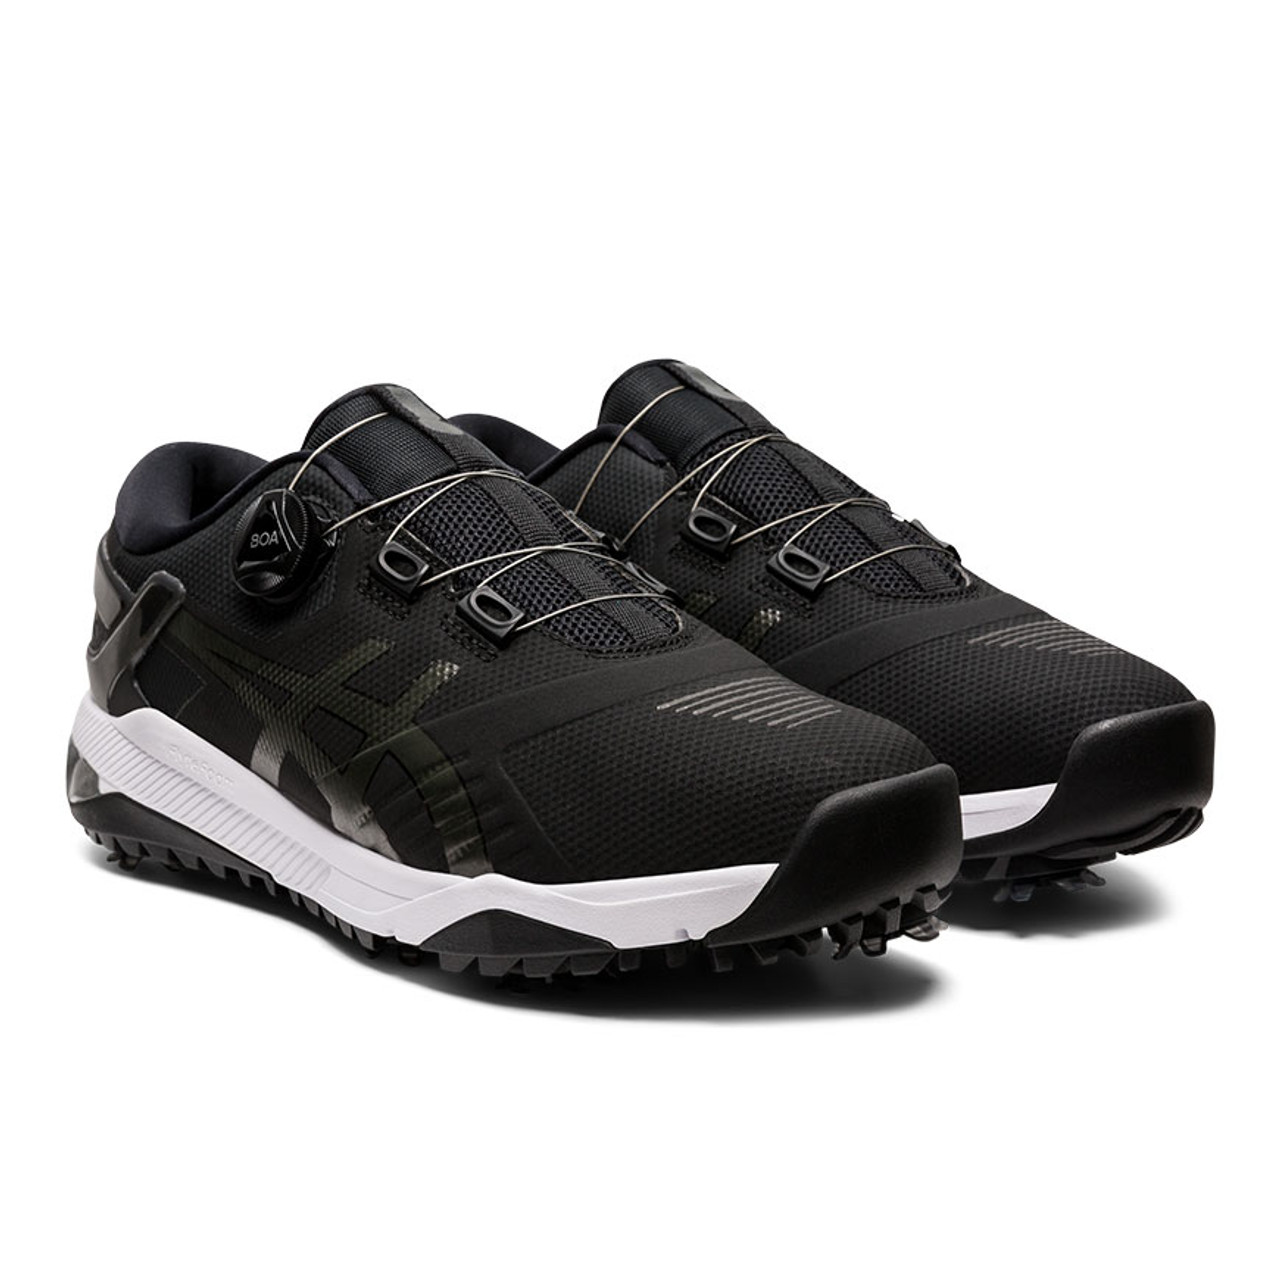 Asics Gel-Course Duo Boa Golf Shoes - Black / Gray / White